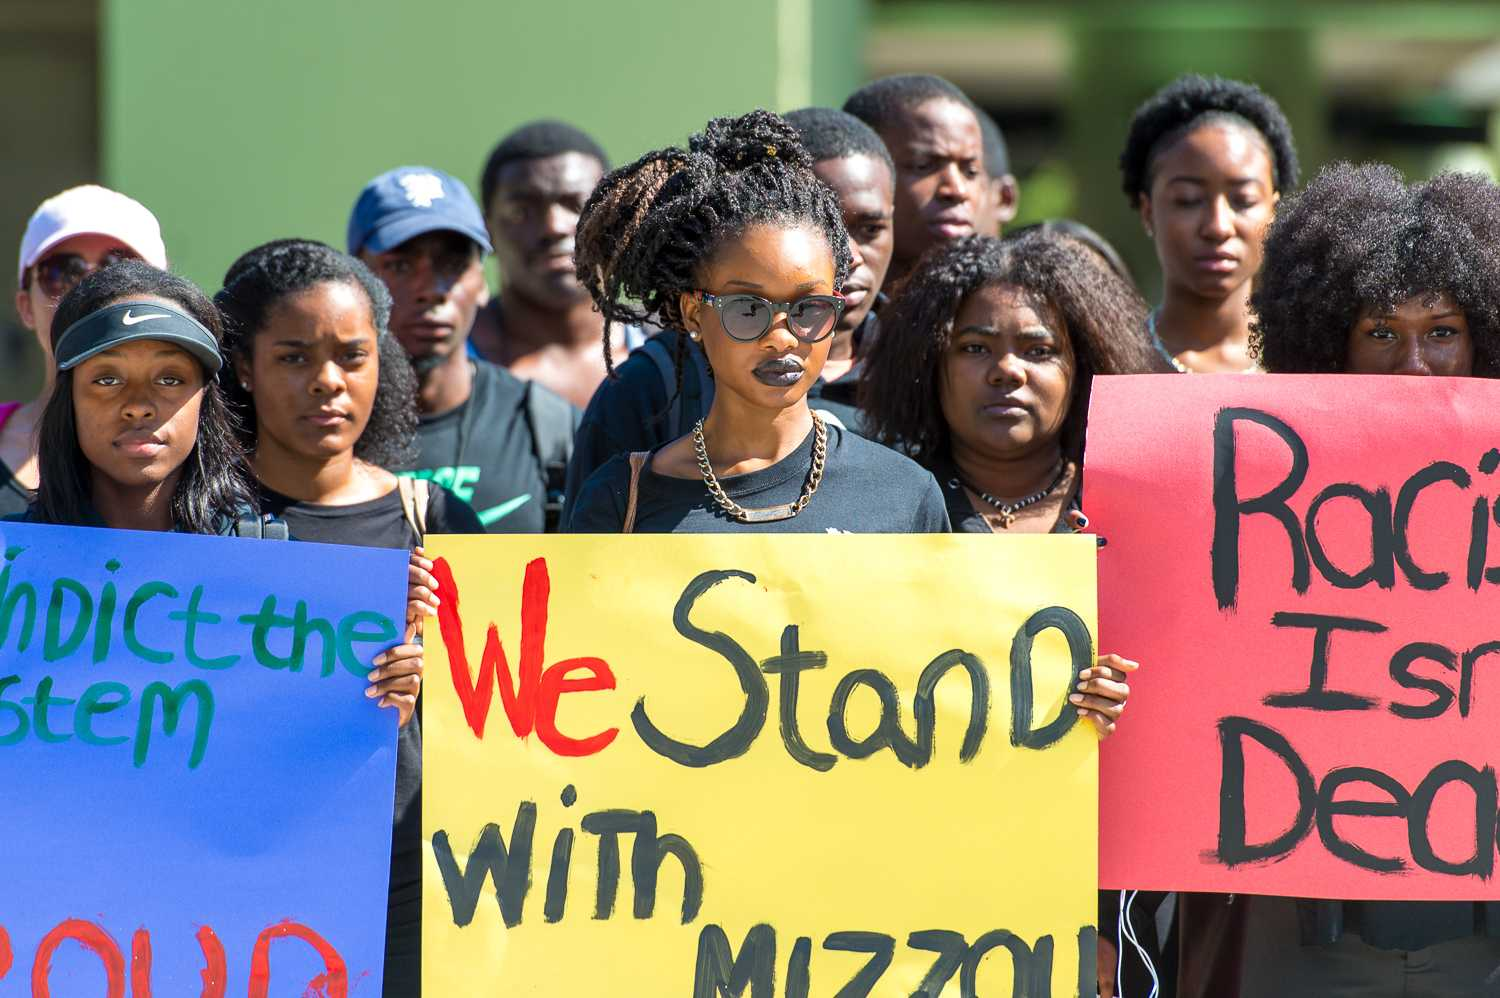 "Berlinie St. Fort, junior communications major (center) shows her support for students at the University of Missouri during a protest in November 2015. Some other signs said ""Racism isn't dead,"" and ""#indictthesystem Black and Proud."". Max Jackson 